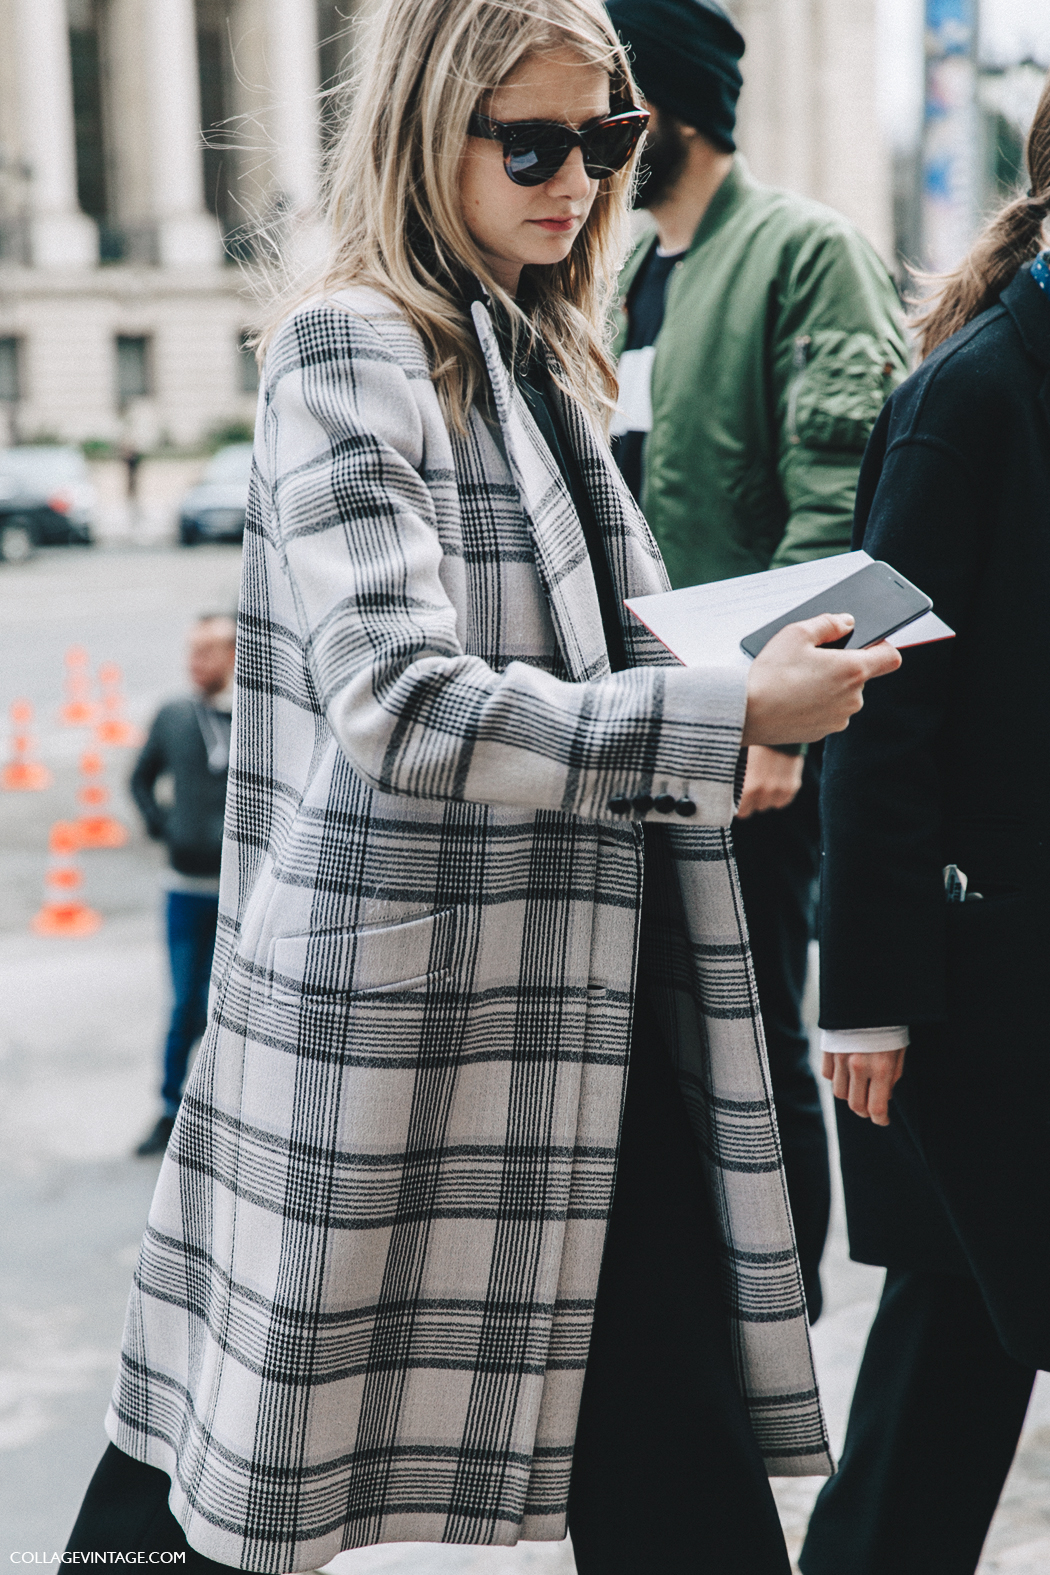 PFW-Paris_Fashion_Week_Fall_2016-Street_Style-Collage_Vintage-Checked_Coat-